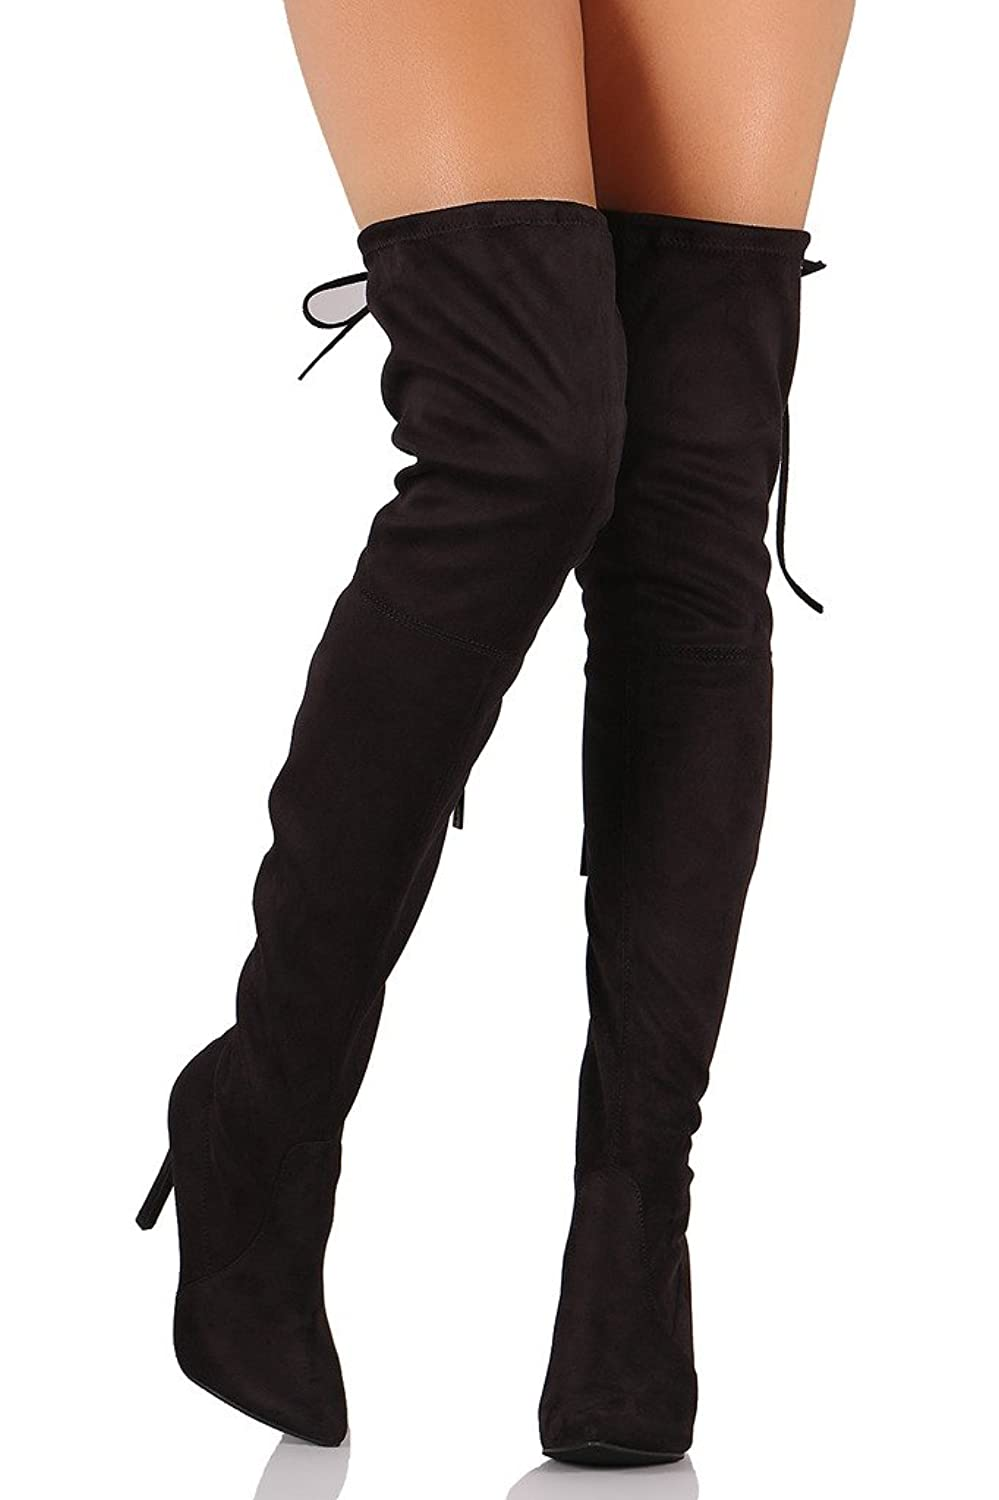 Women's AM12 Thigh High Over The Knee - Drawstring Block Chunky Heel Pointy Round Toe - Stretchy Thigh High Snug Fit Boots